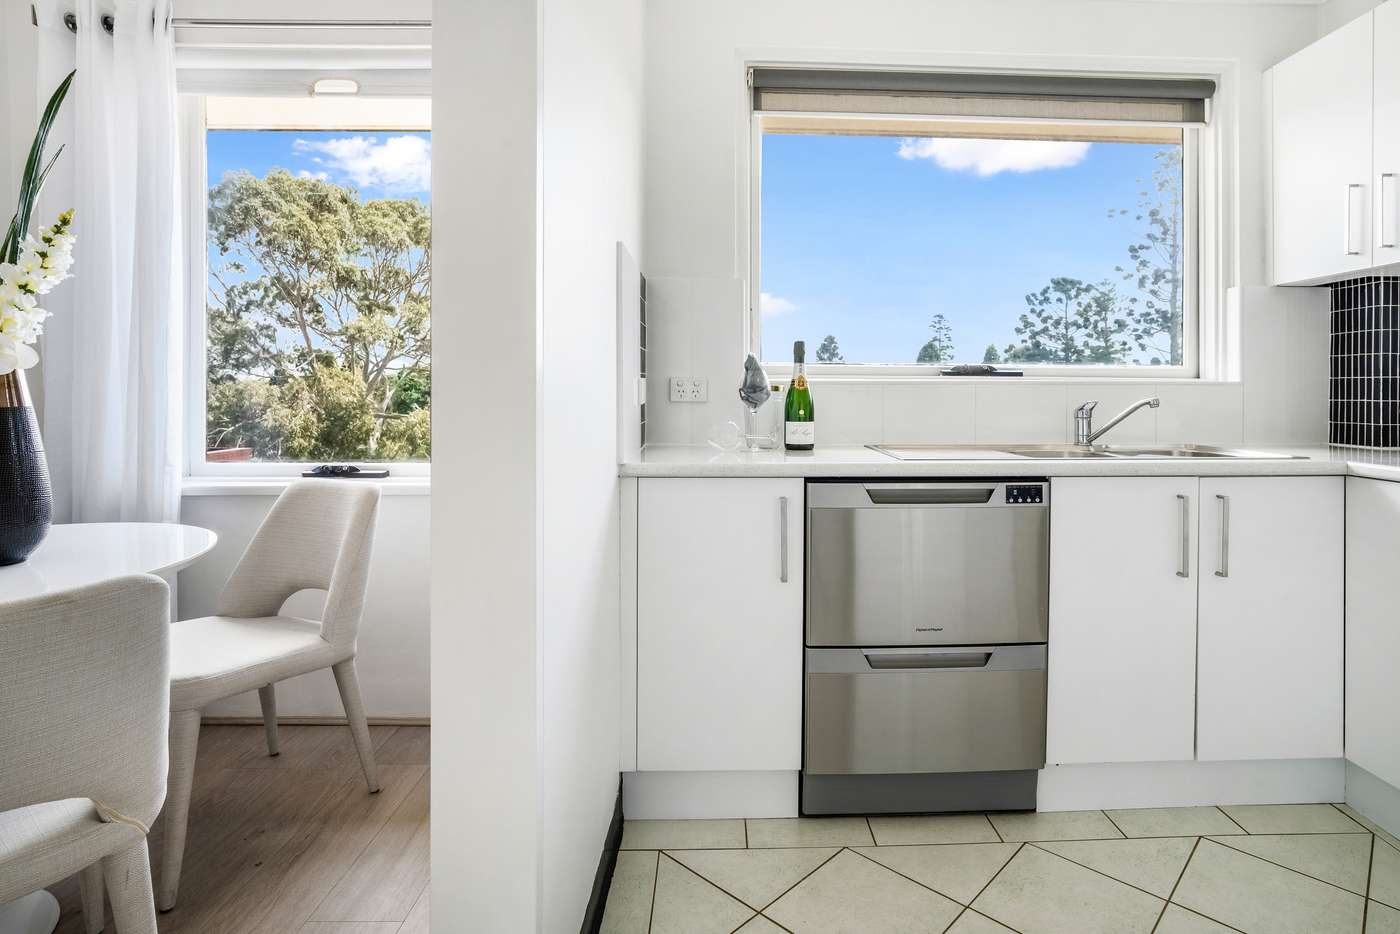 Fifth view of Homely apartment listing, 9/11-13 Ormond Street, Ashfield NSW 2131